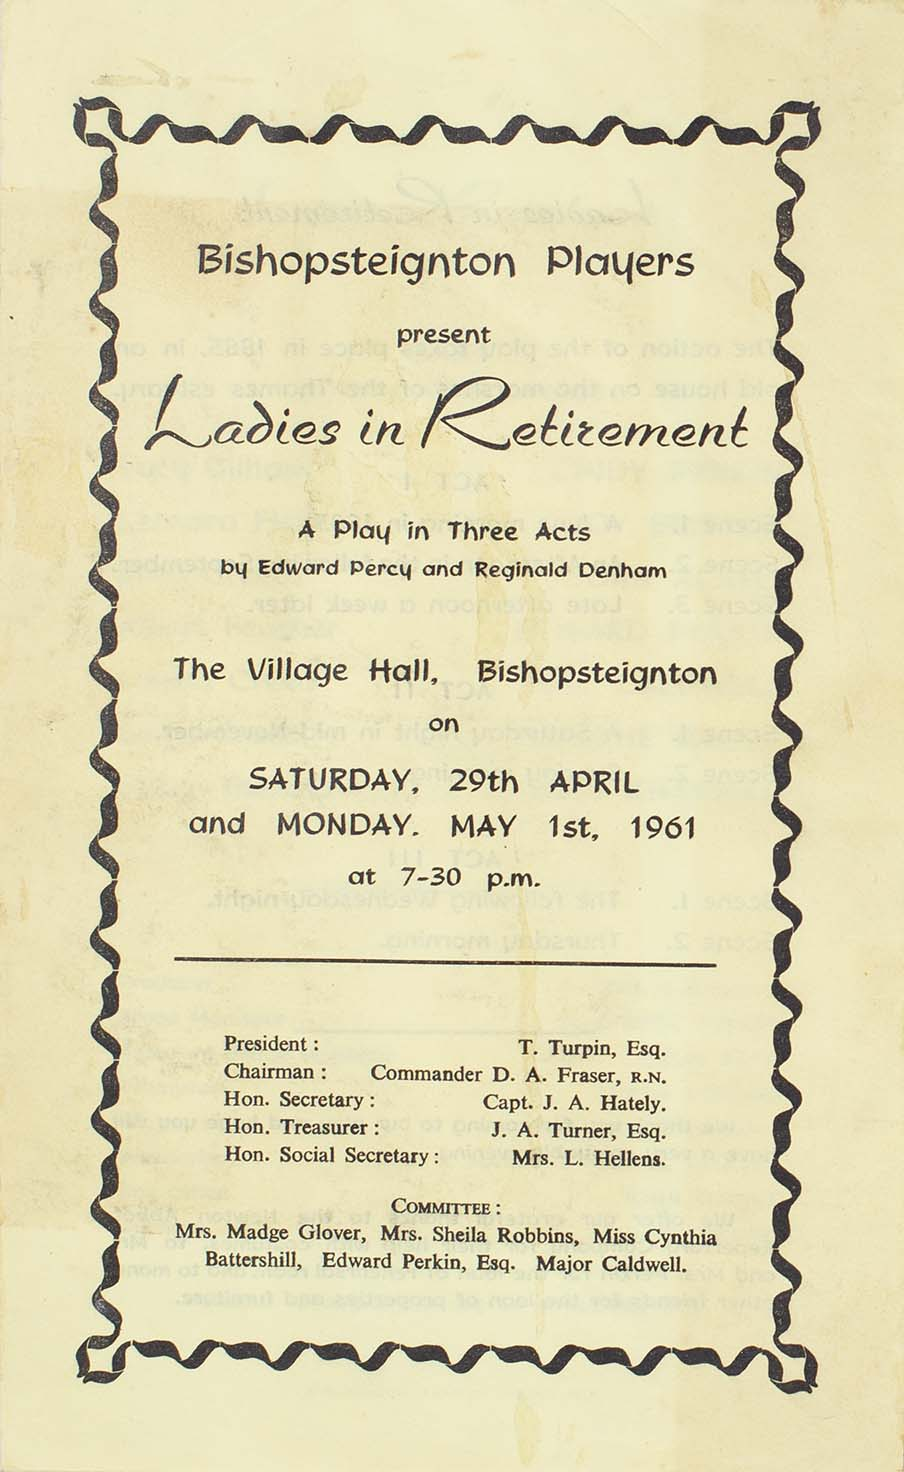 Leaflet for the play 'Ladies in Retirement' presented by the Bishopsteignton Players front